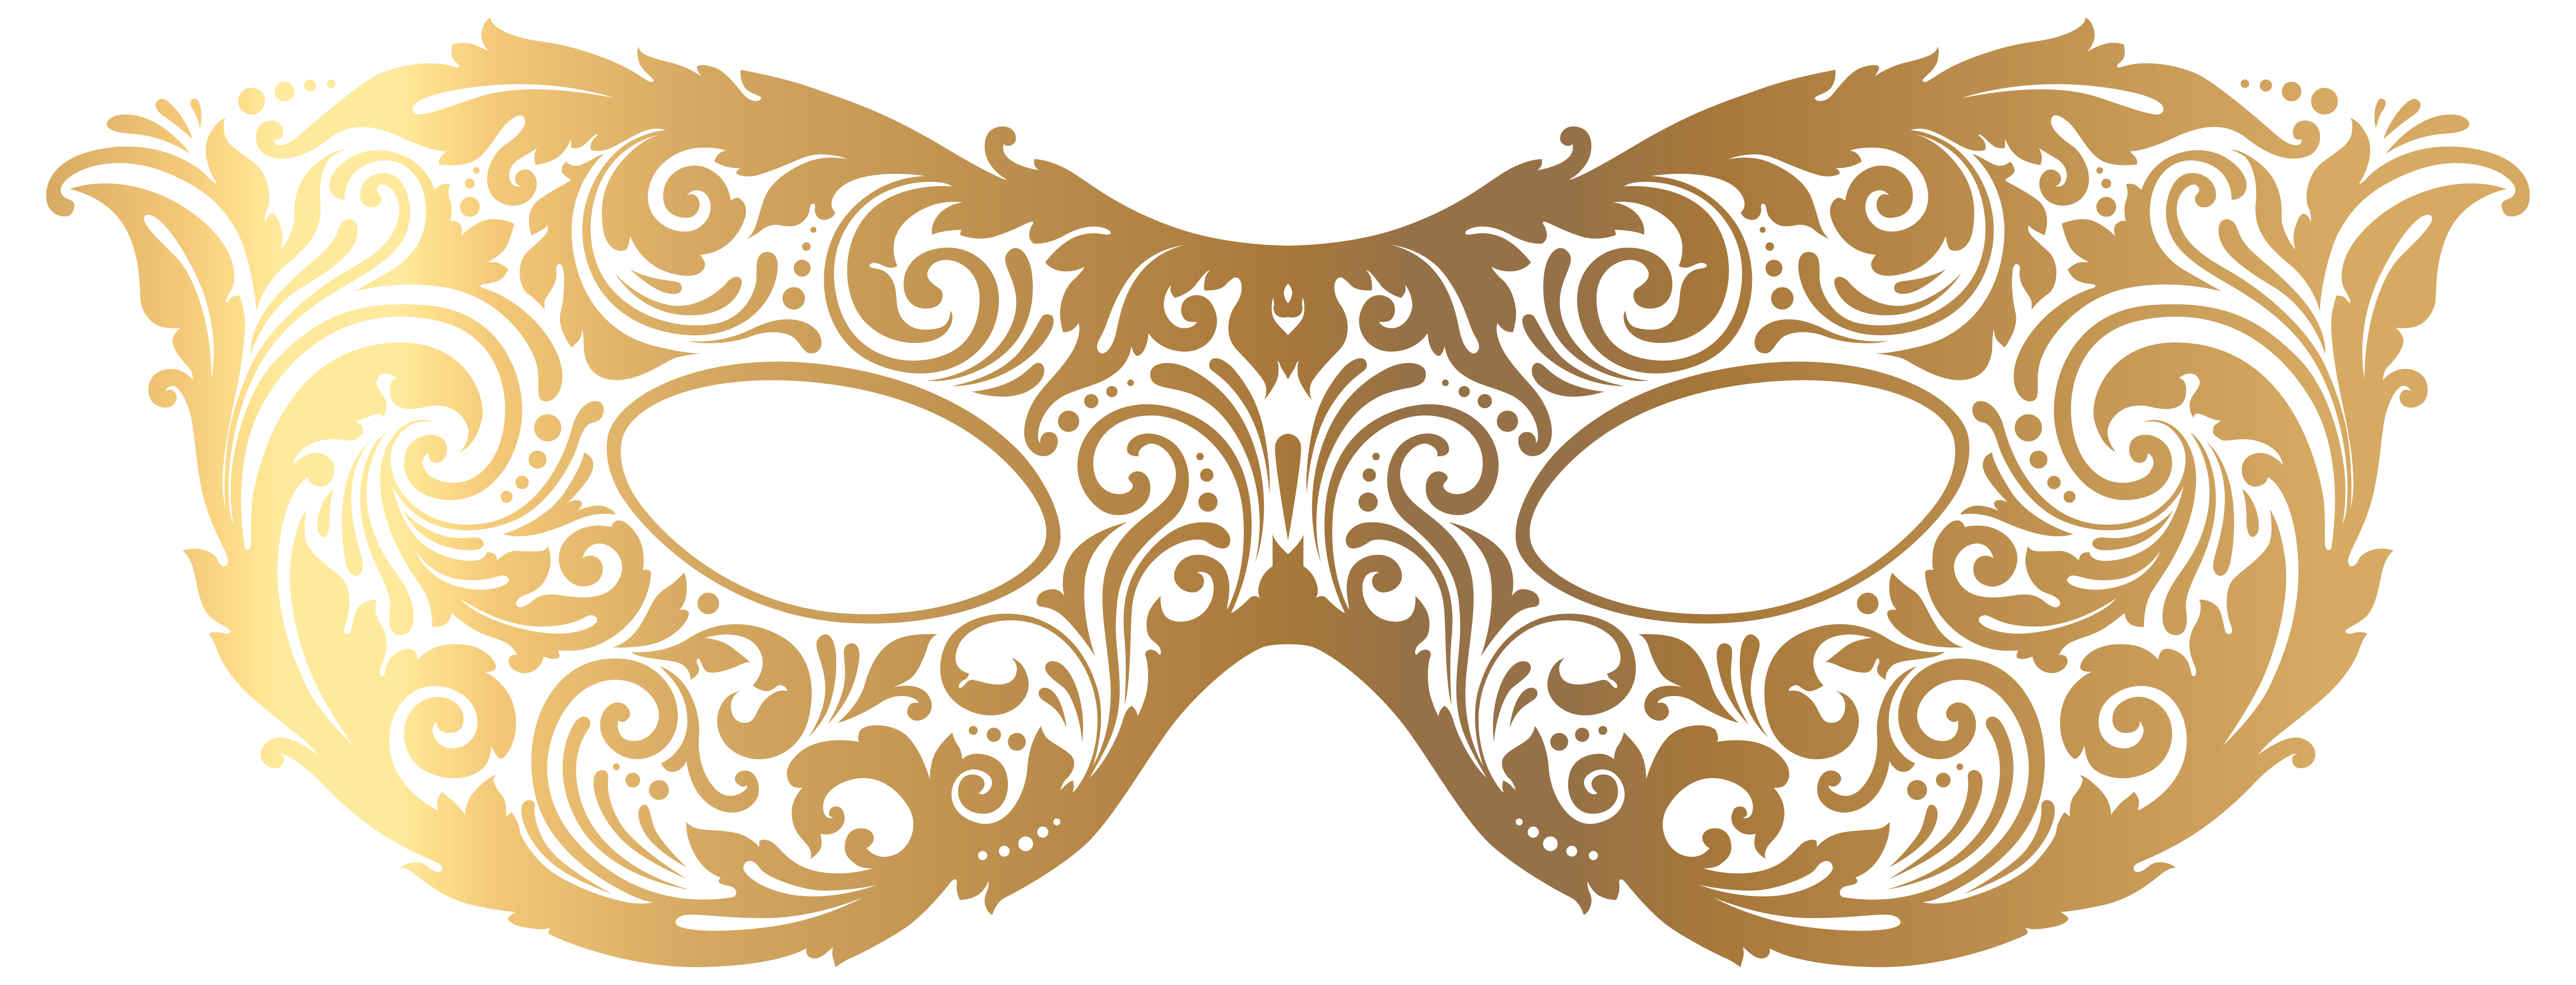 Gold Carnival Mask Png Transparent Image